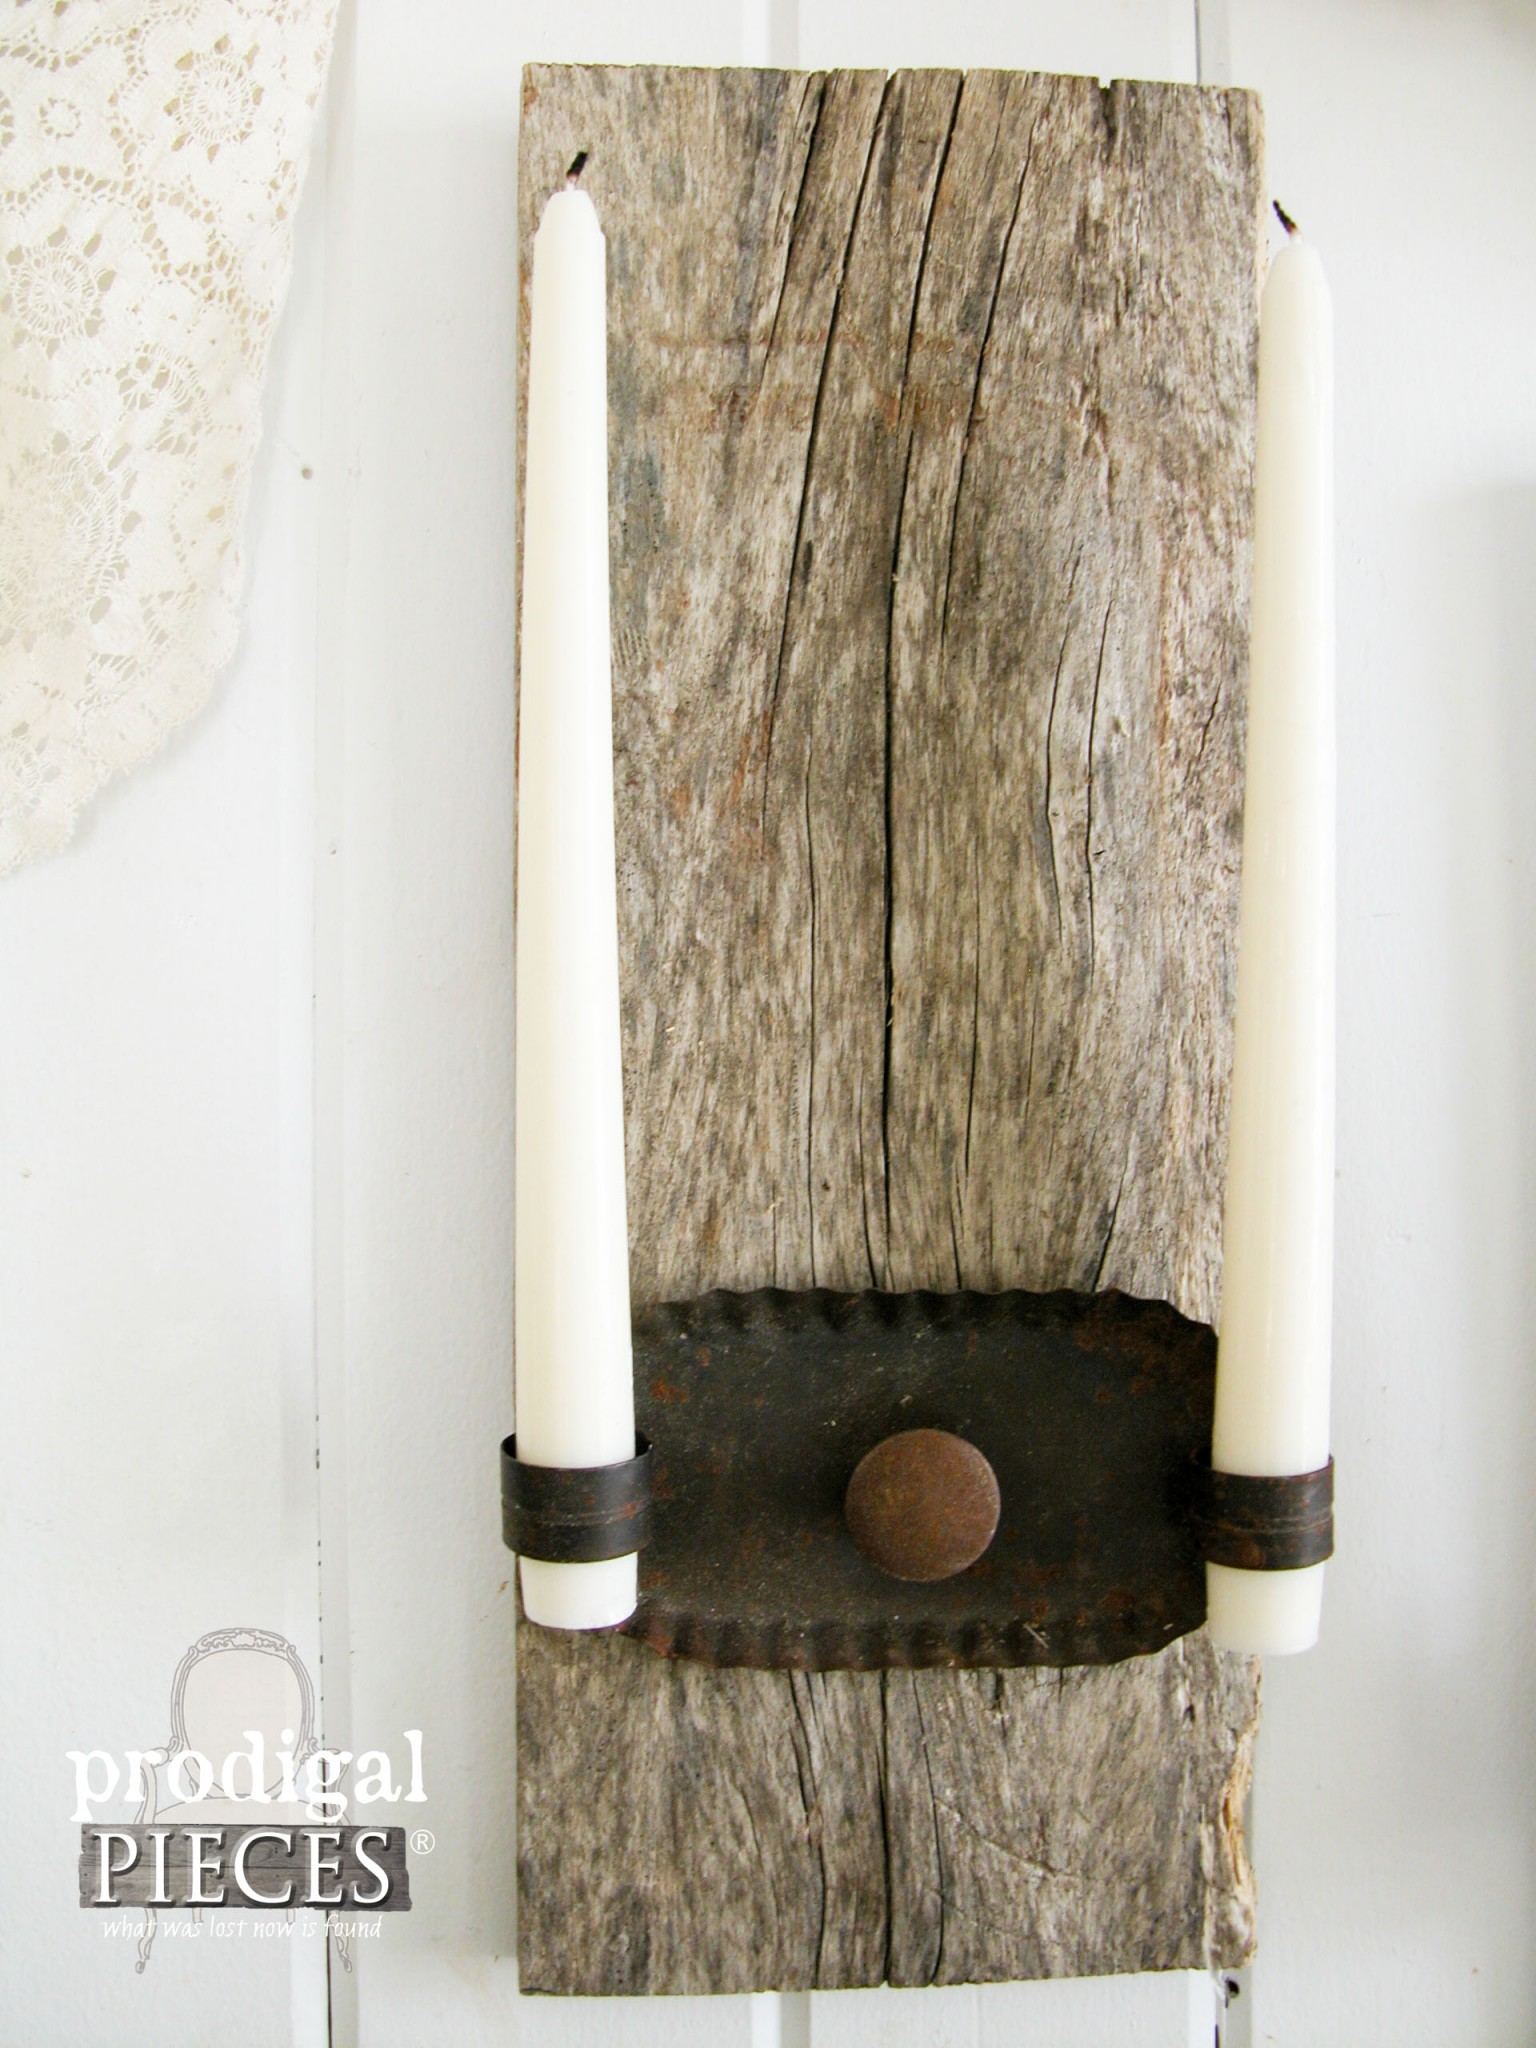 Rustic candle sconces made with reclaimed wood and repurposed parts by prodigal pieces www